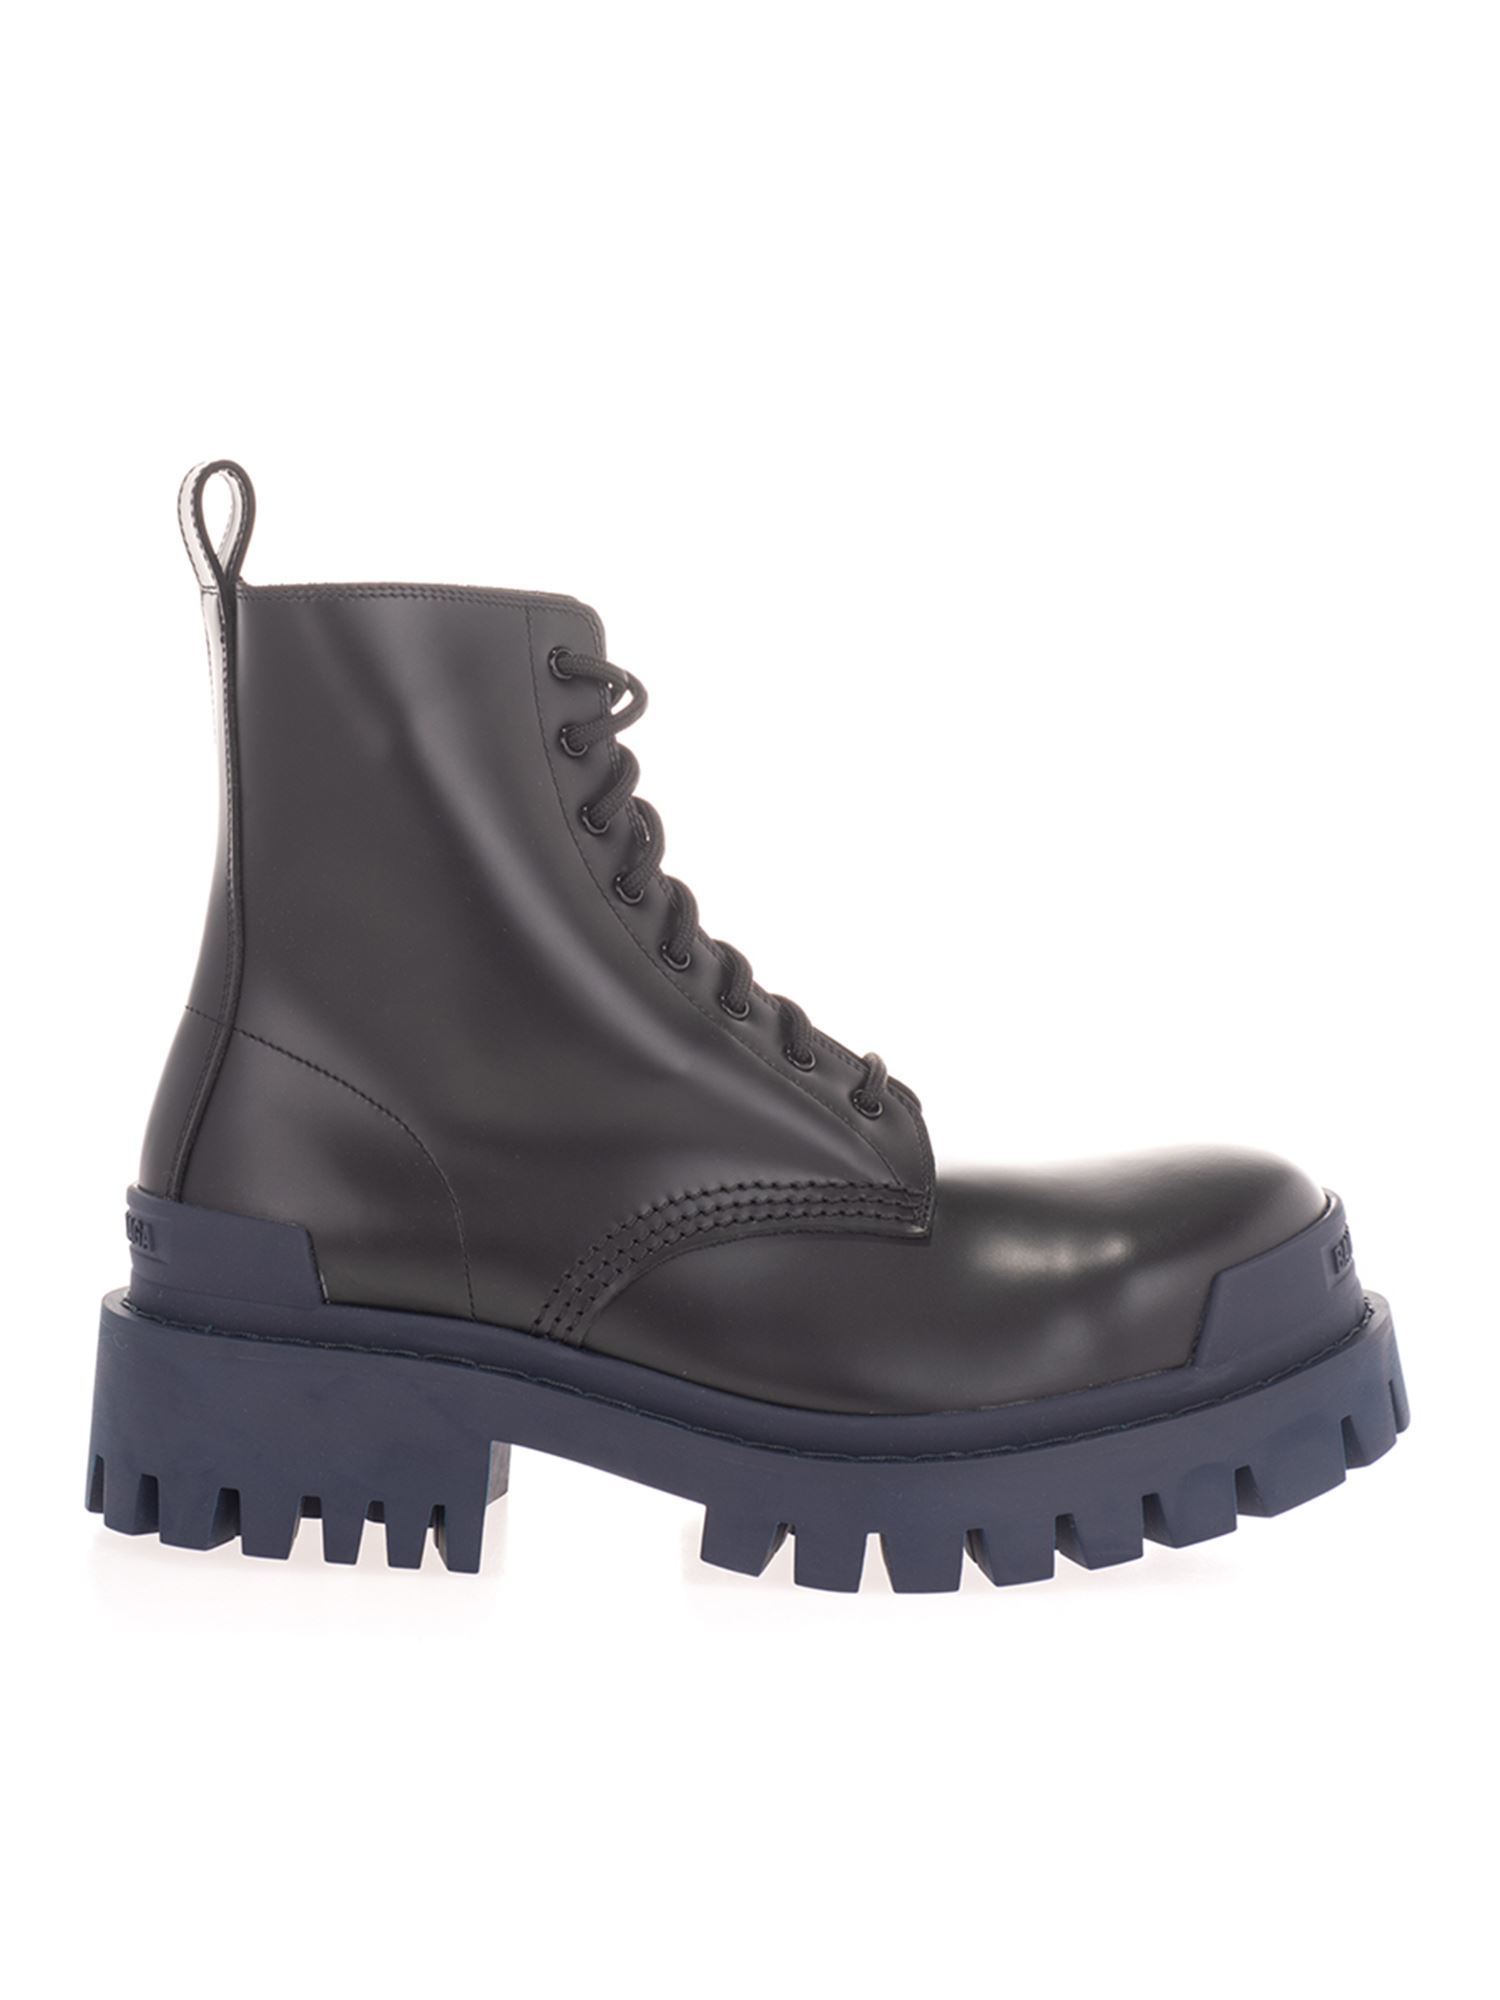 Balenciaga TRACTOR BOOTS IN BLACK AND NAVY BLUE